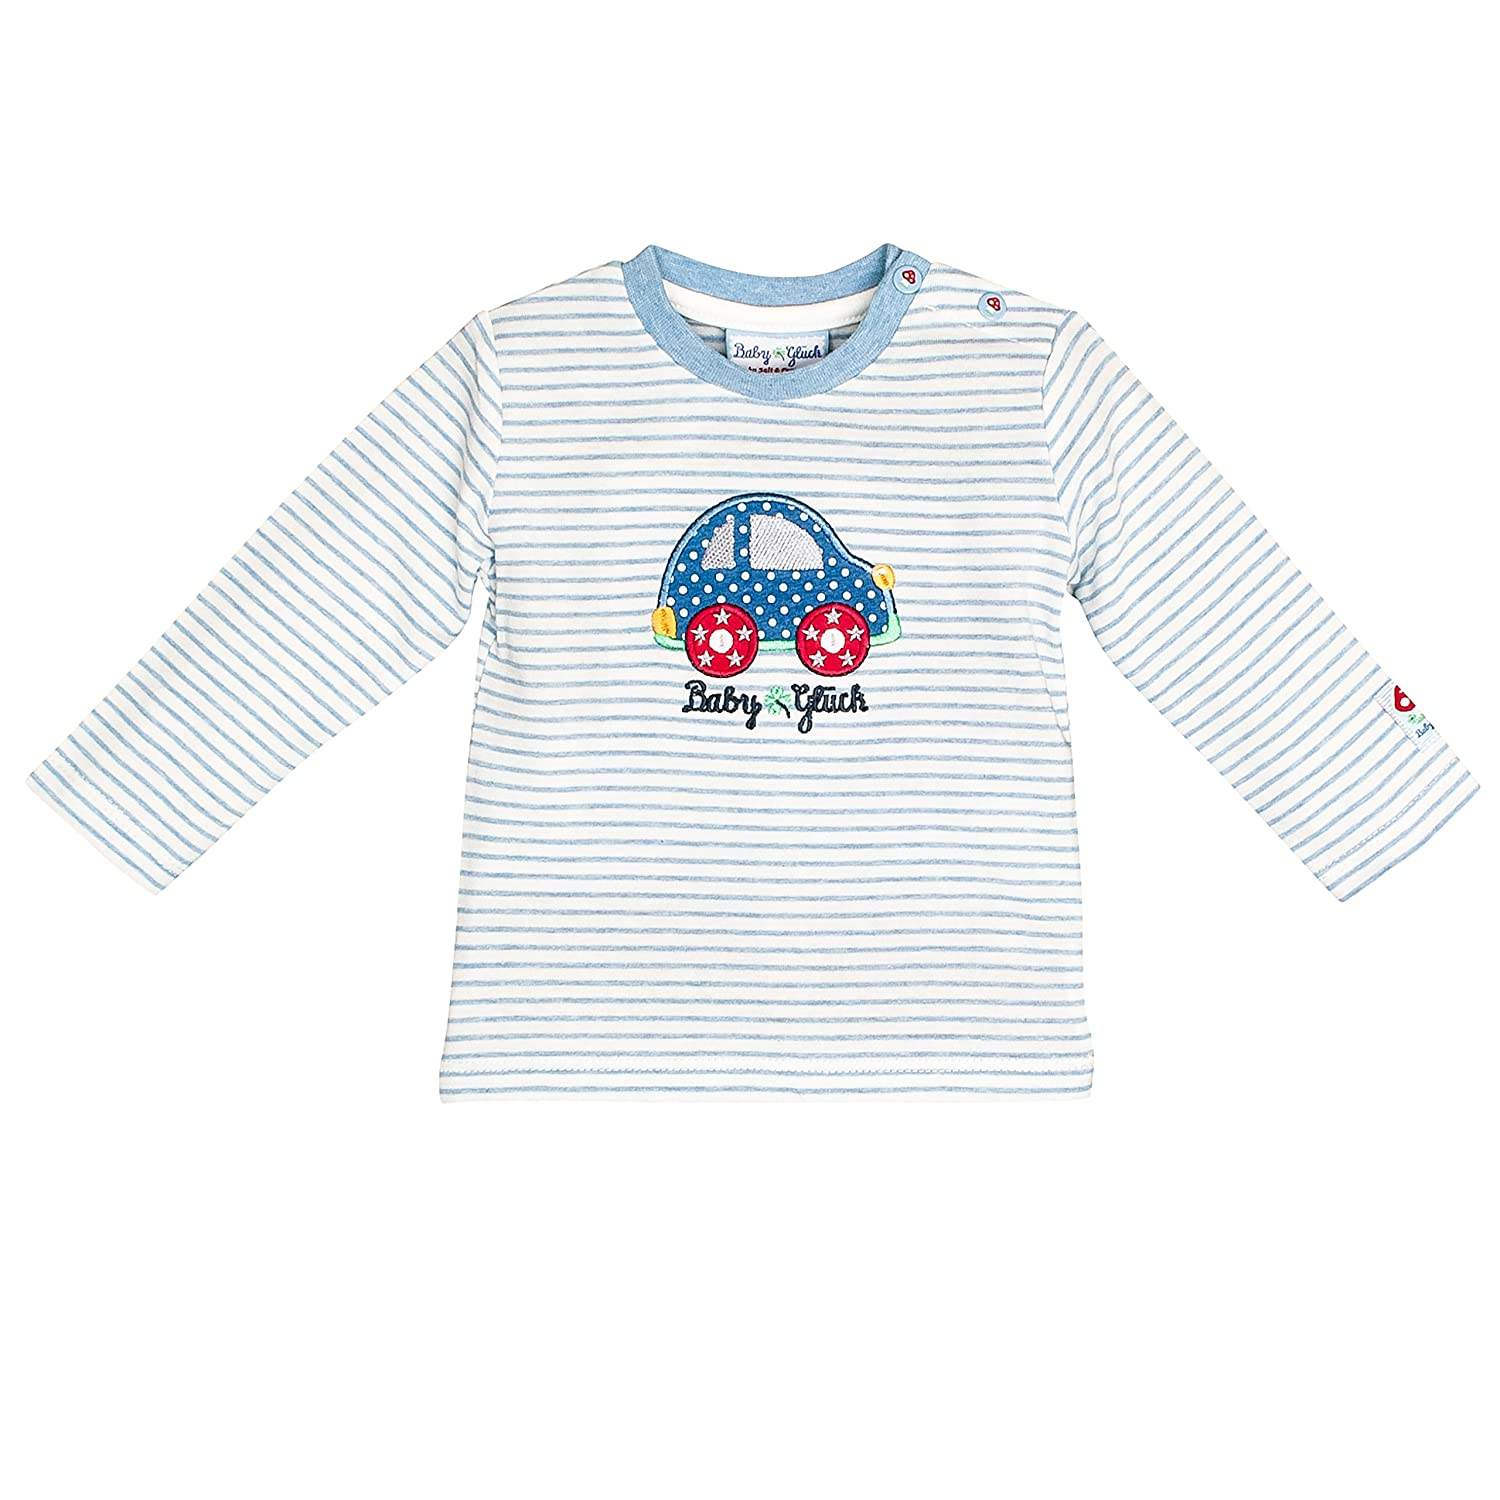 SALT AND PEPPER Unisex Baby Bg Stripes T-Shirt